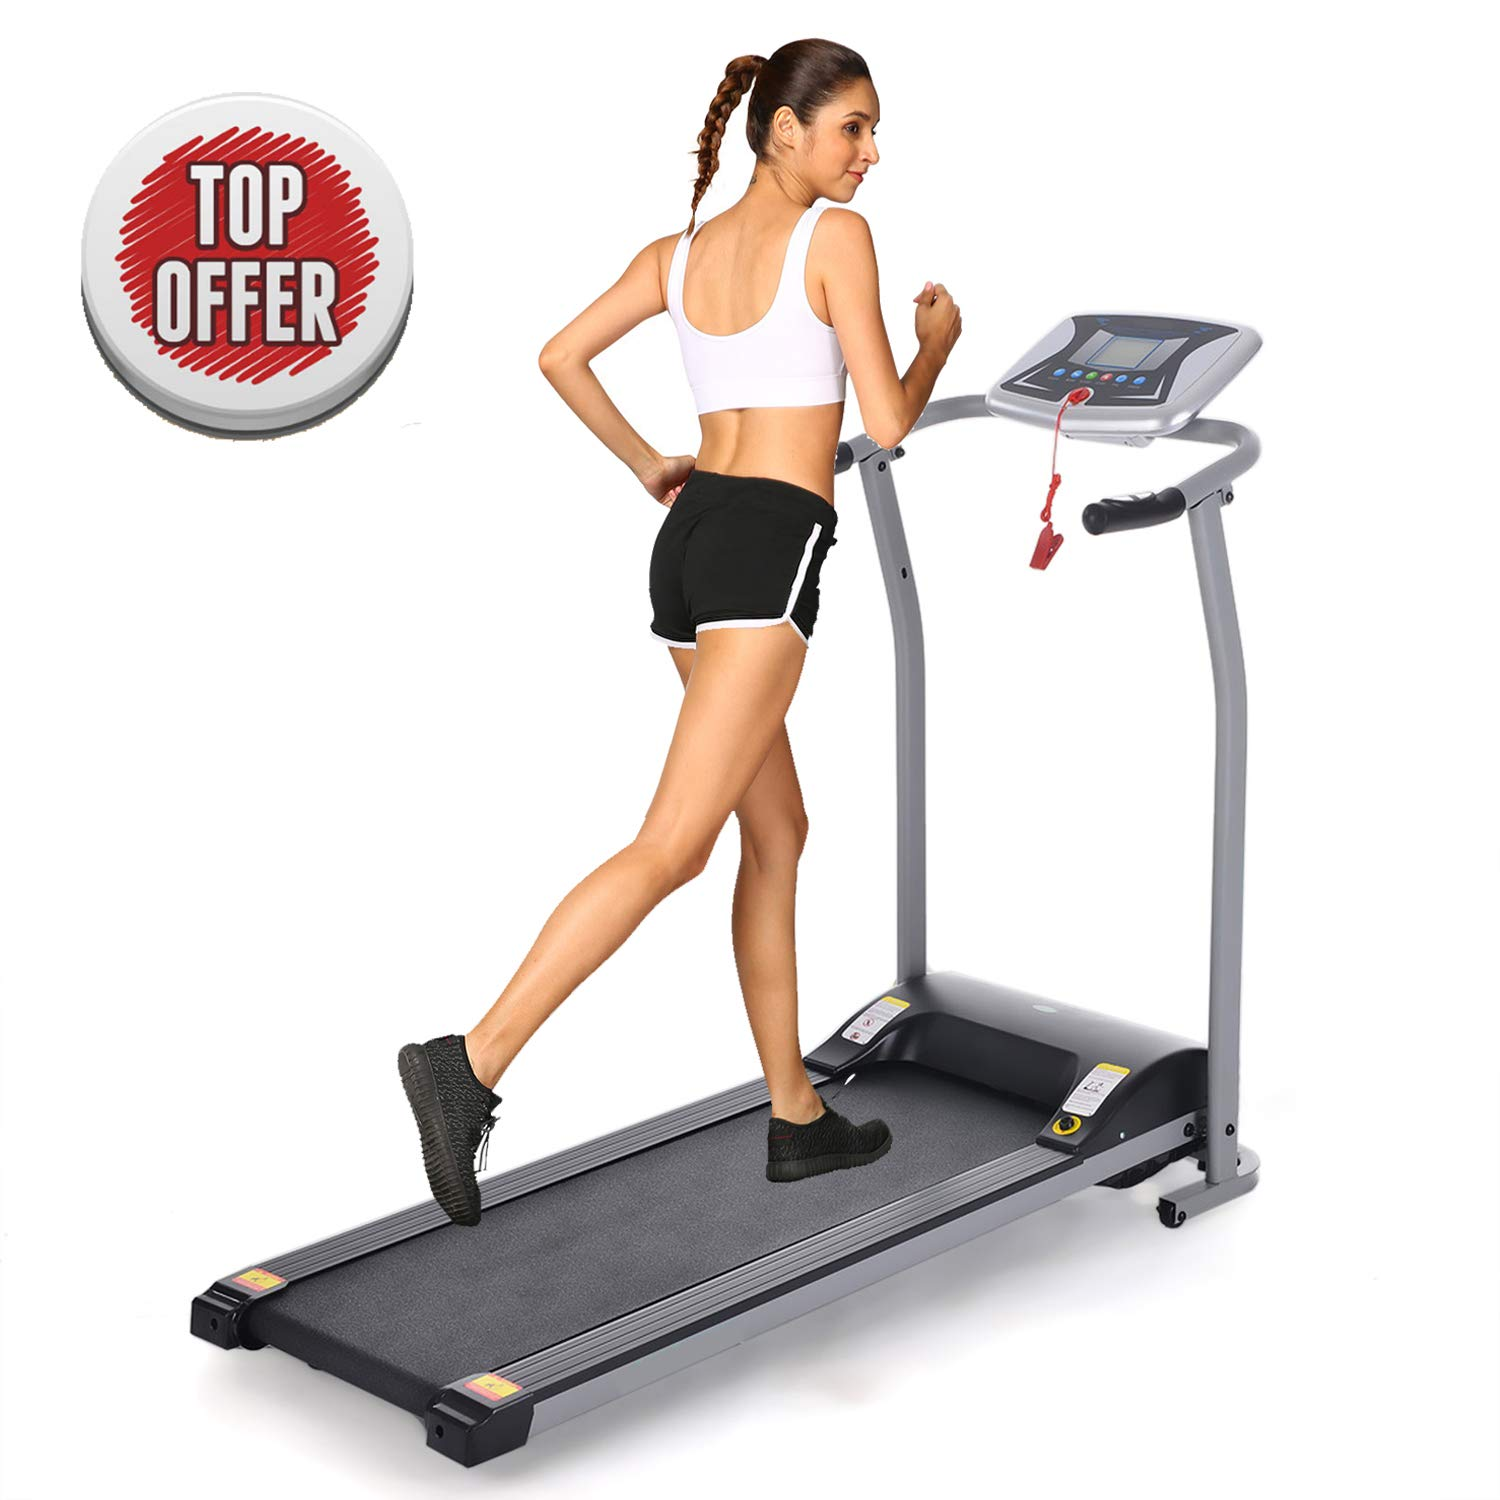 Folding Electric Treadmill Running Machine Power Motorized for Home Gym Exercise Walking Fitness (1.5 HP - Silver - Not Incline)